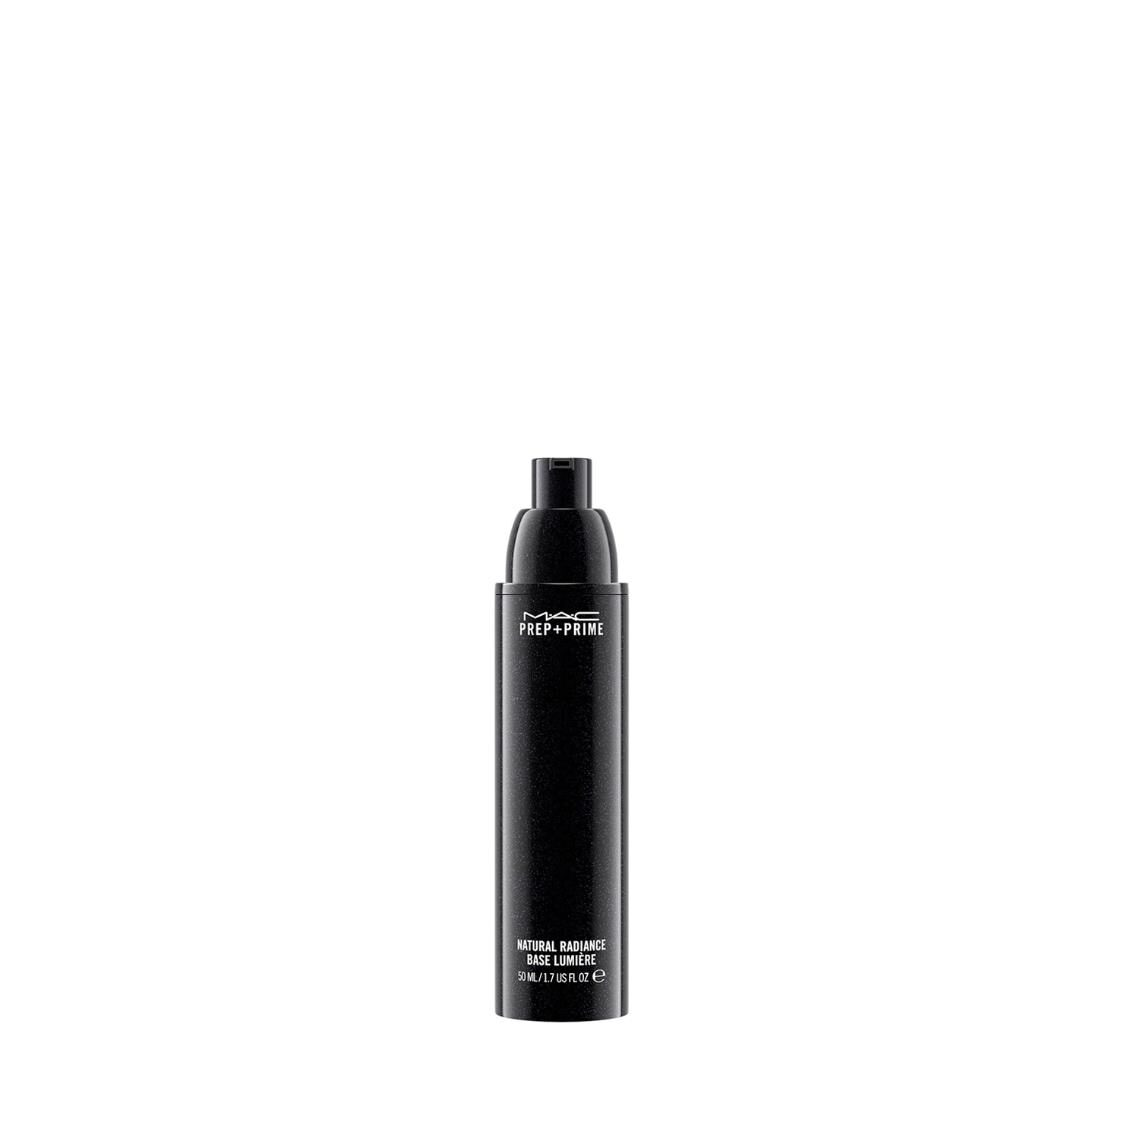 MAC Prep  Prime Natural Radiance with Hydration 50ml